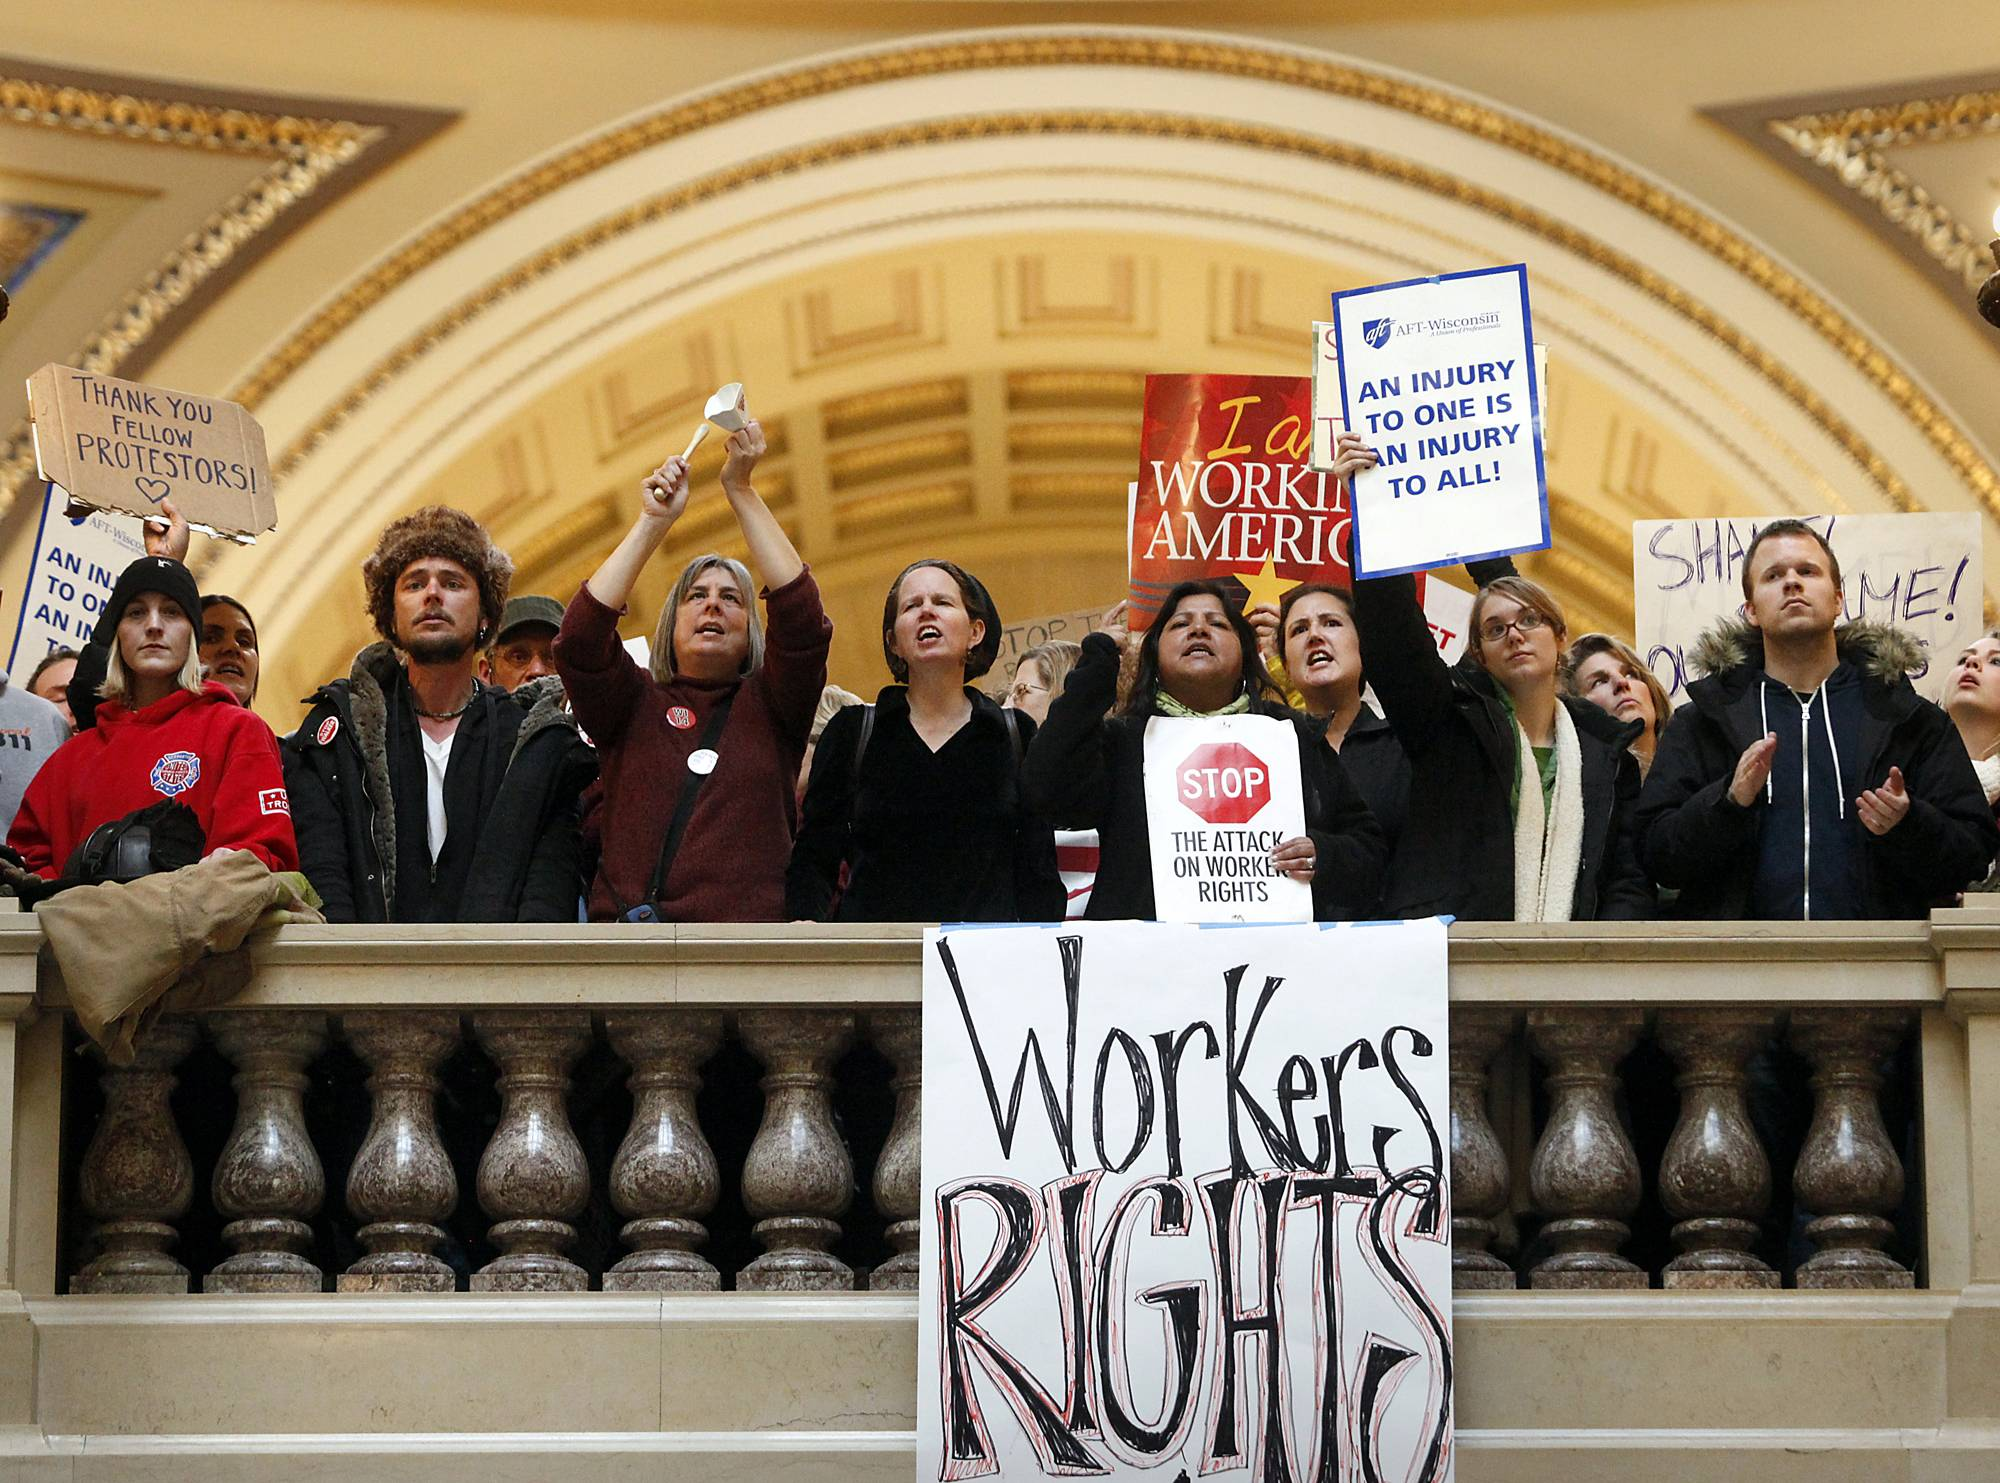 With the labor movement suffering an epic defeat in Wisconsin and perhaps other states, union leaders plan to use the setback to fire up their members nationwide and mount a major counterattack against Republicans at the ballot box in 2012.